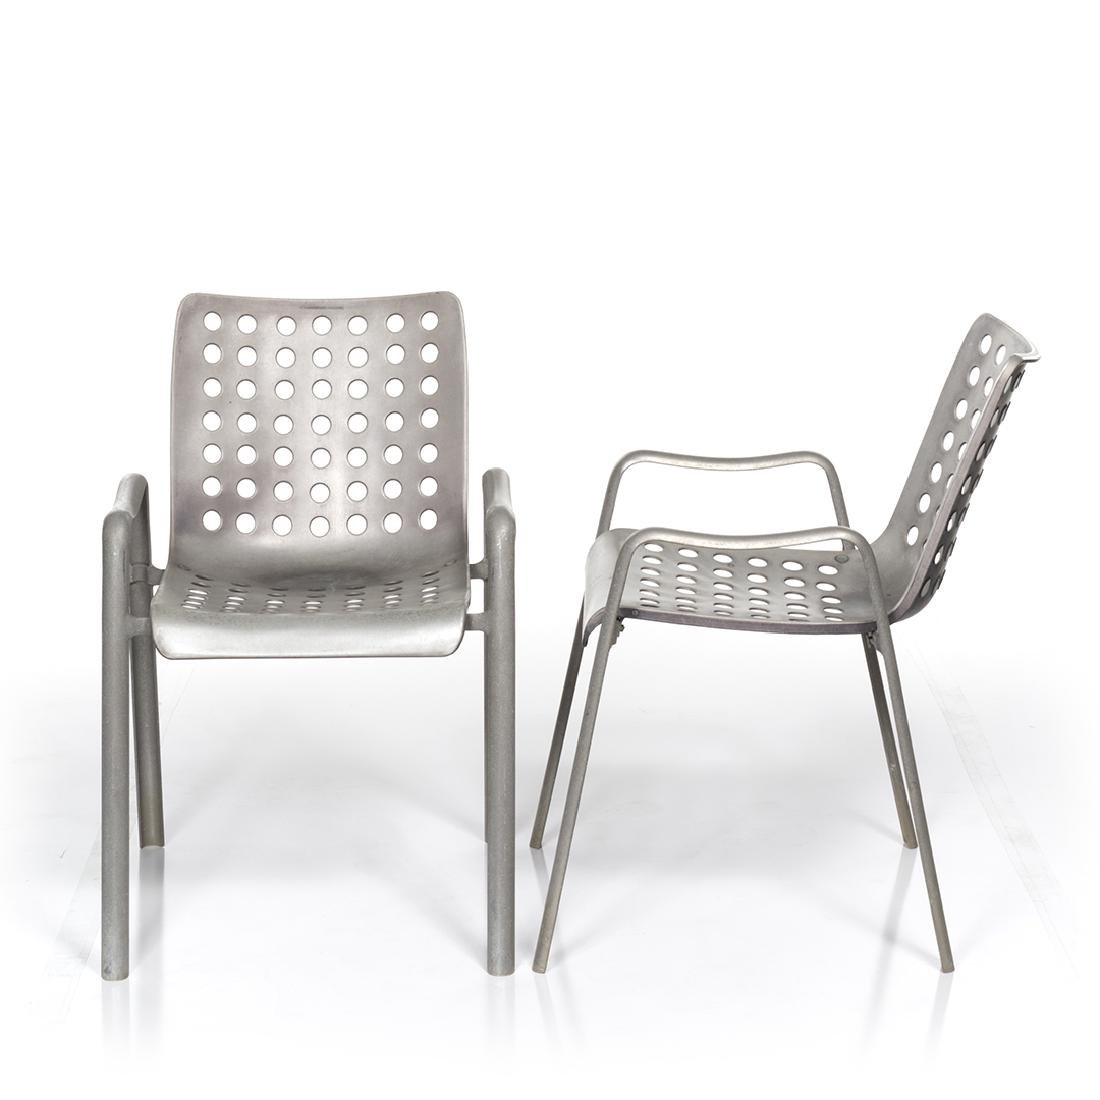 Hans Coray Landi Chairs (2) - 2